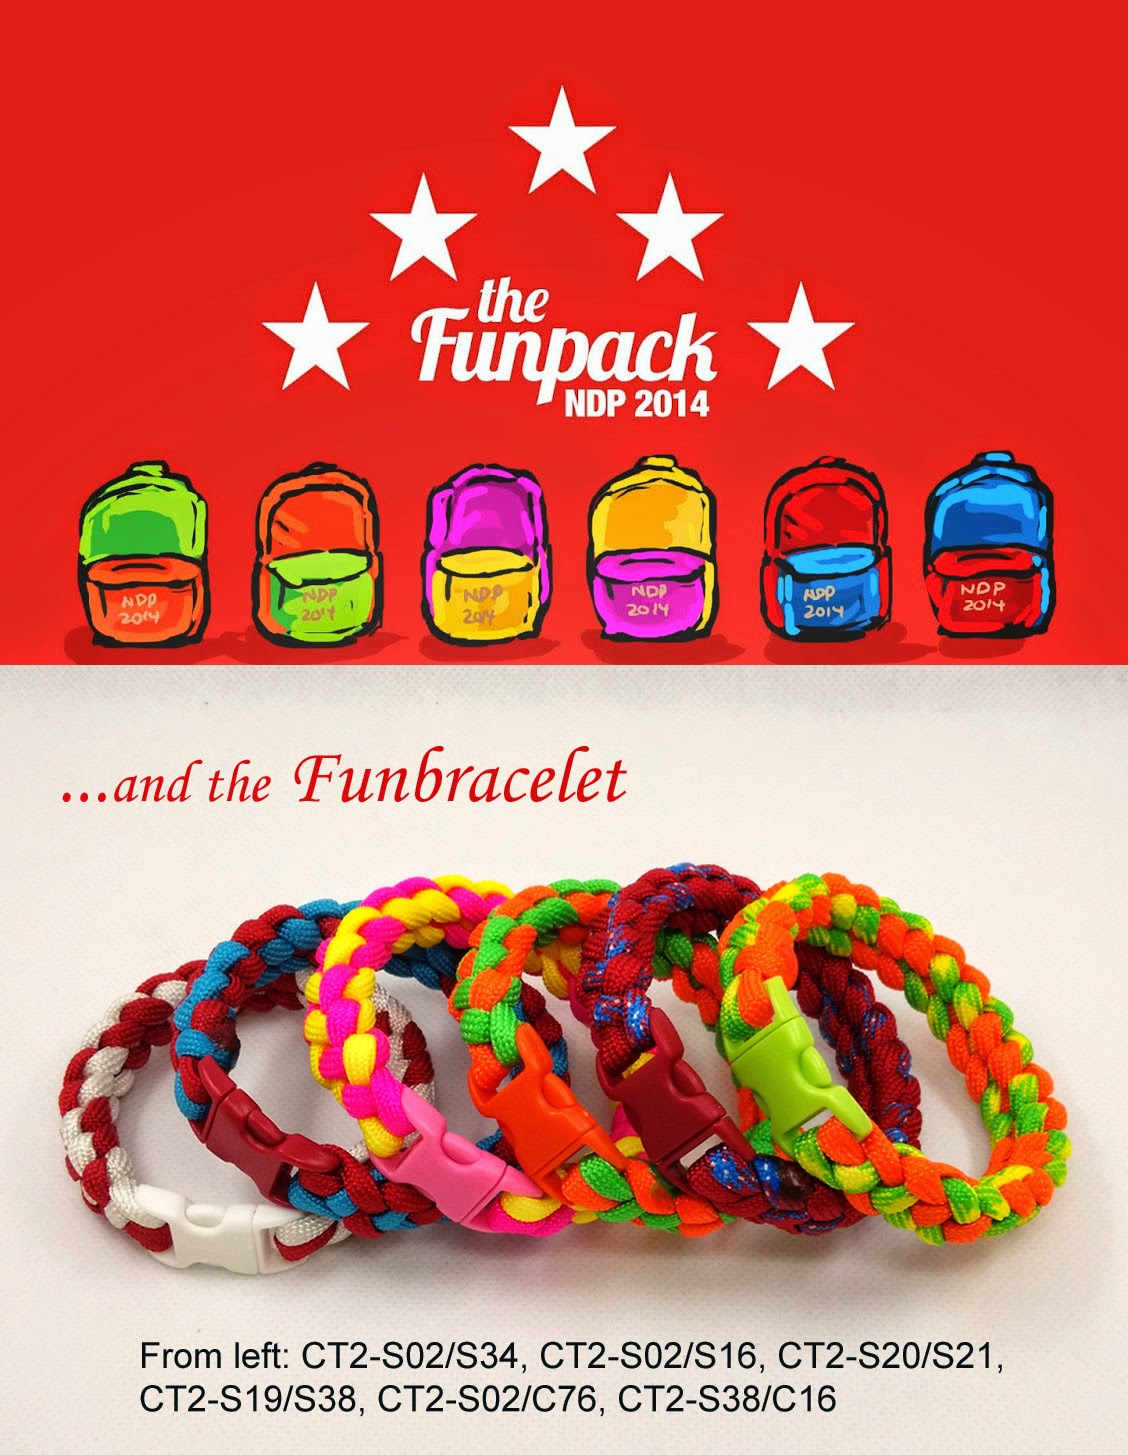 Fun Bracelets… for NDP 2014